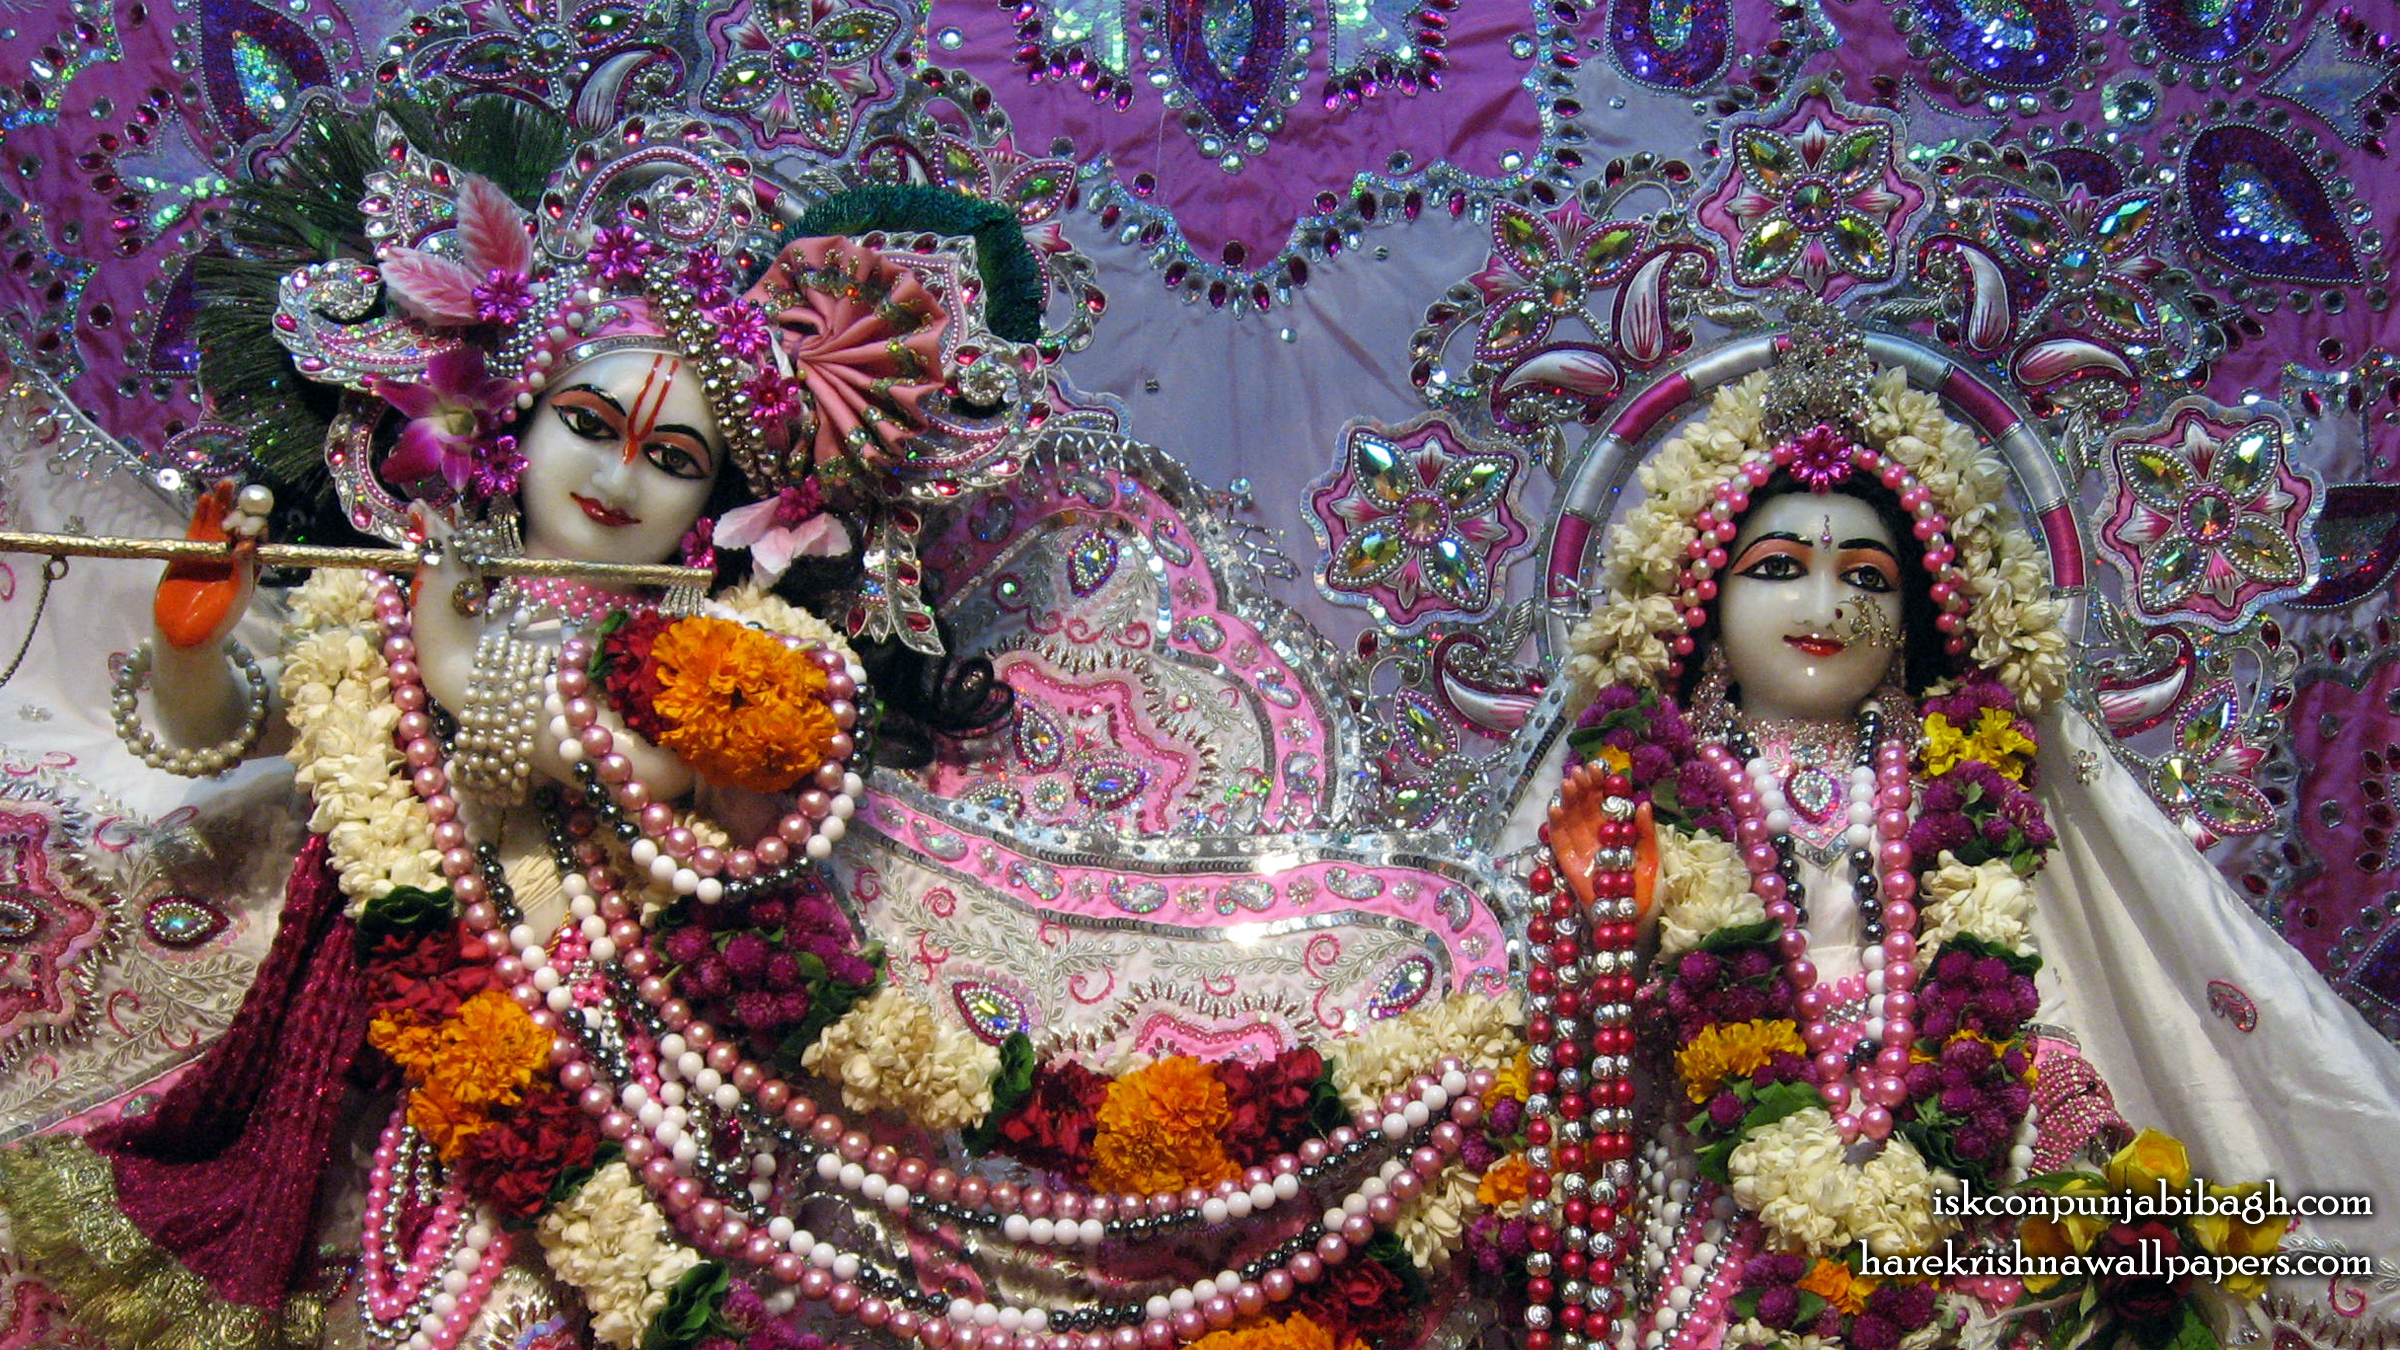 Sri Sri Radha Radhikaraman Close up Wallpaper (003) Size 2400x1350 Download